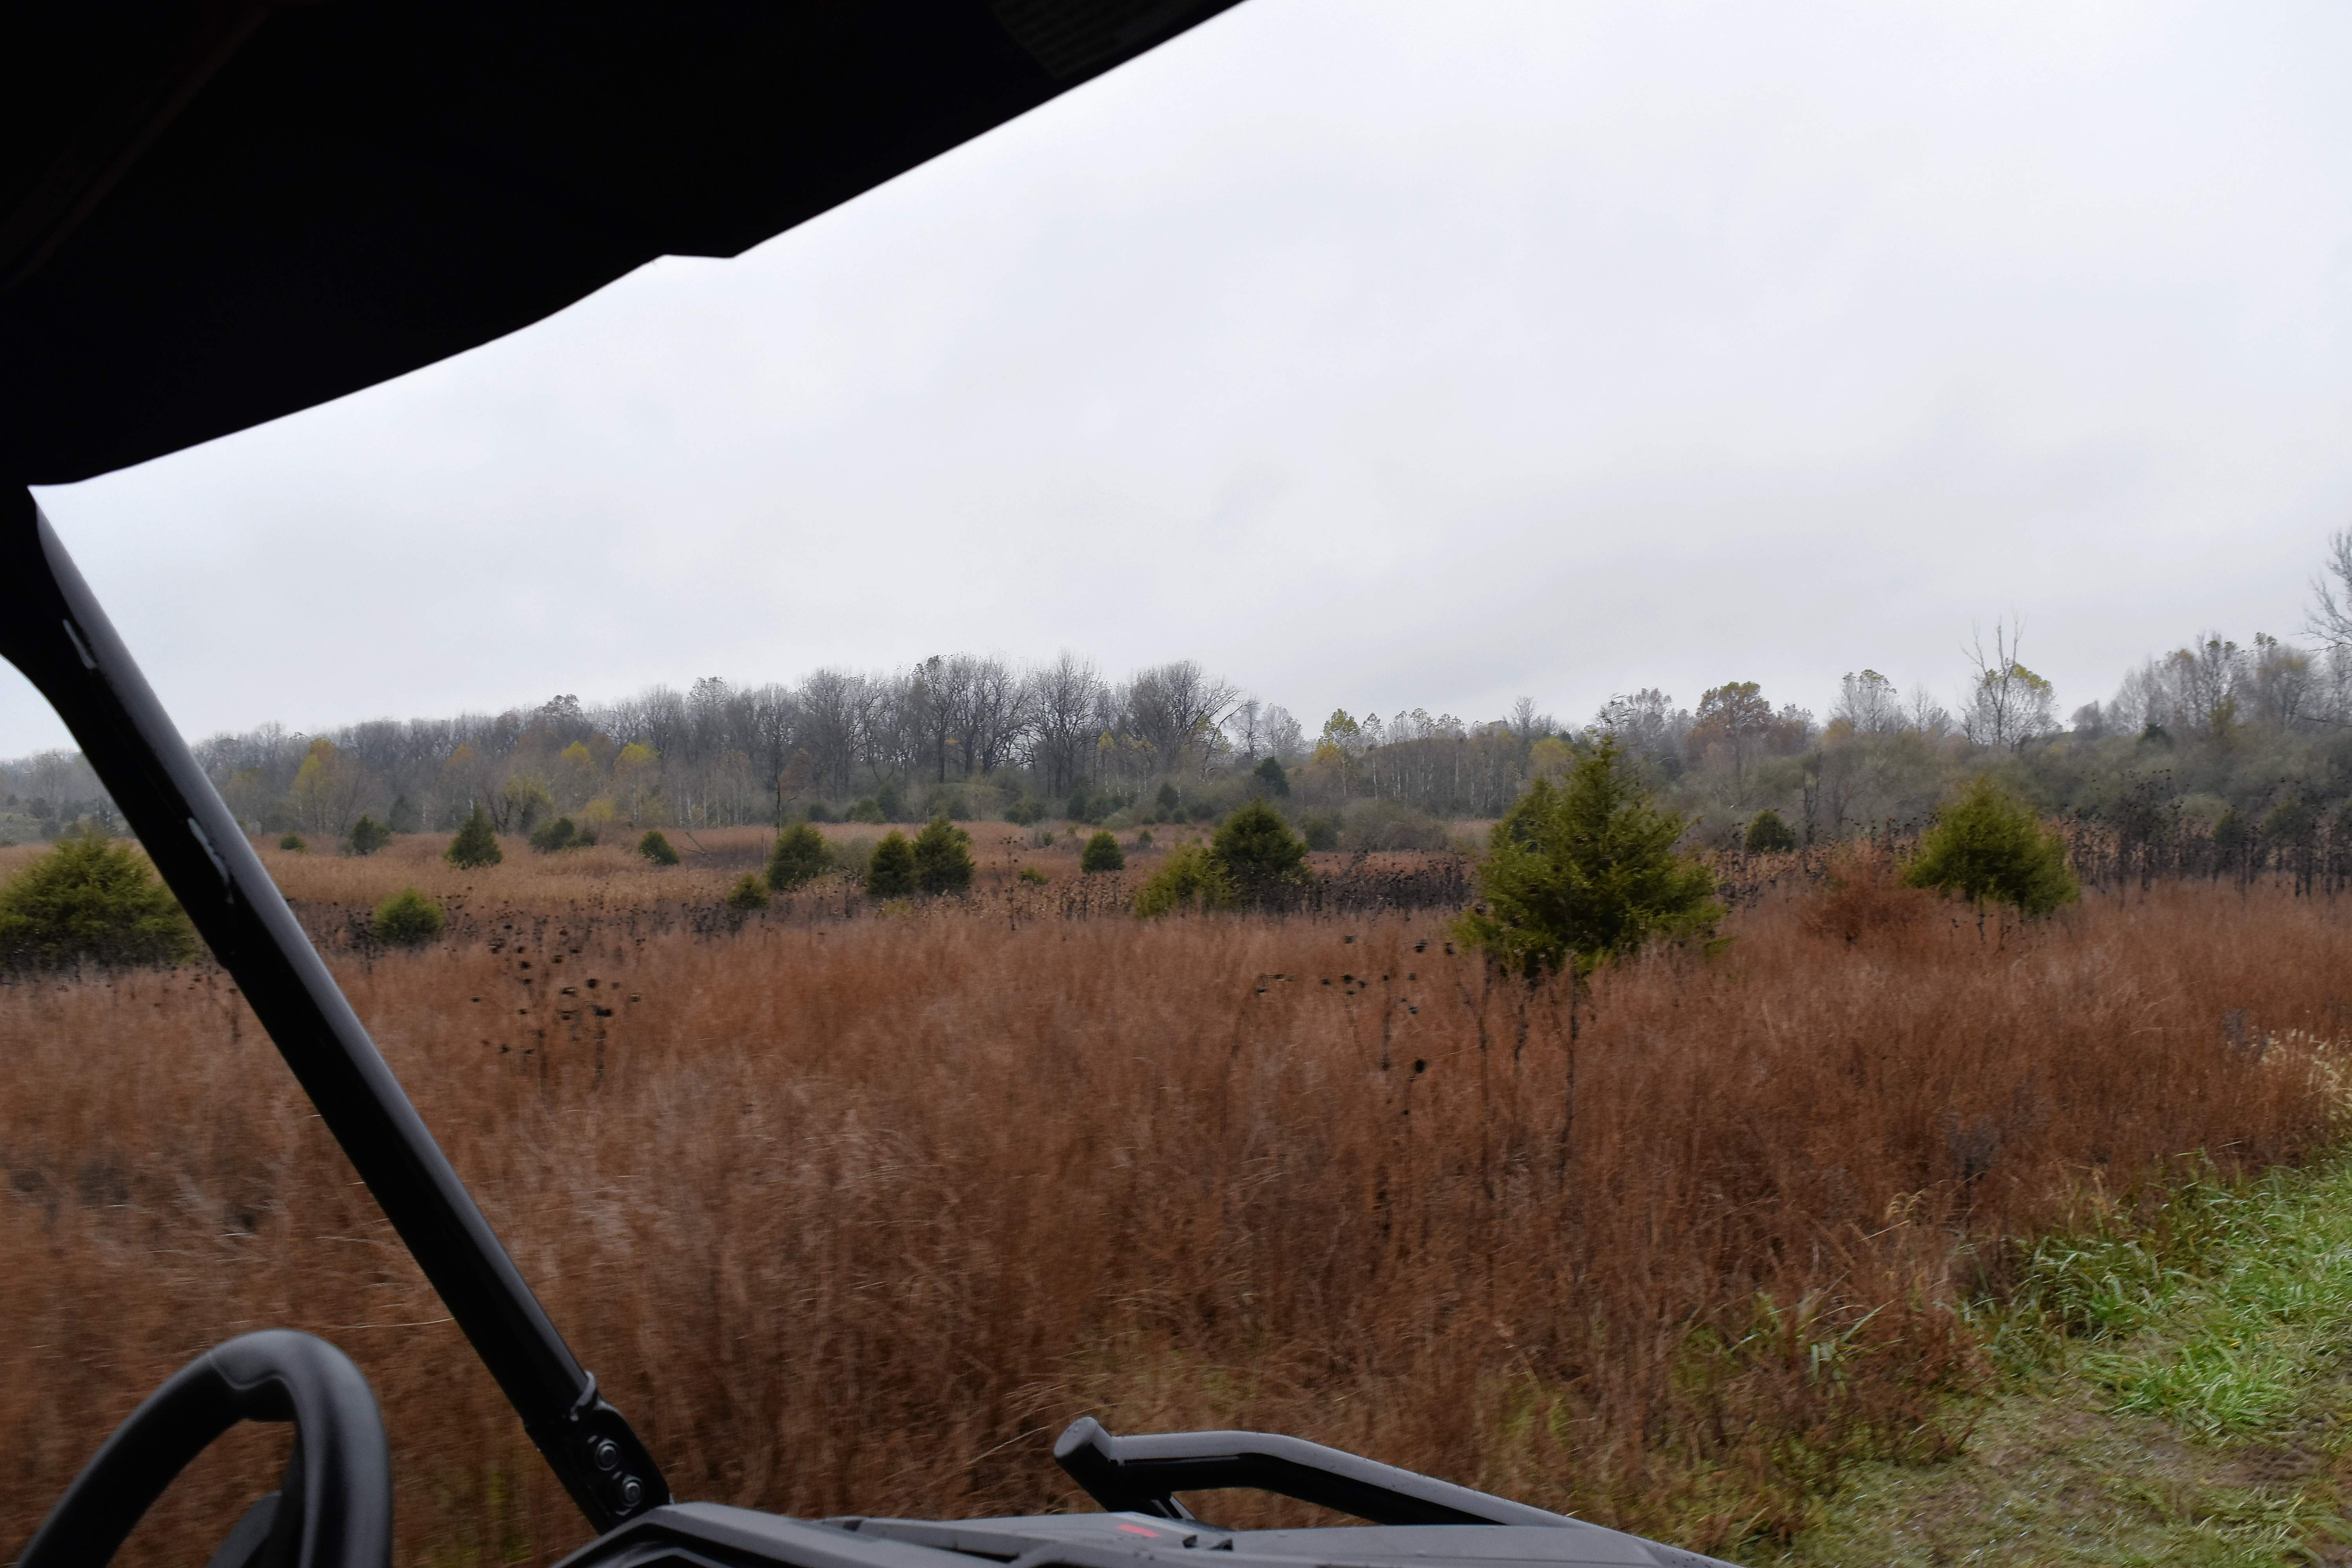 A view of the Sahara Woods landscape from within a side-by-side off-highway vehicle.